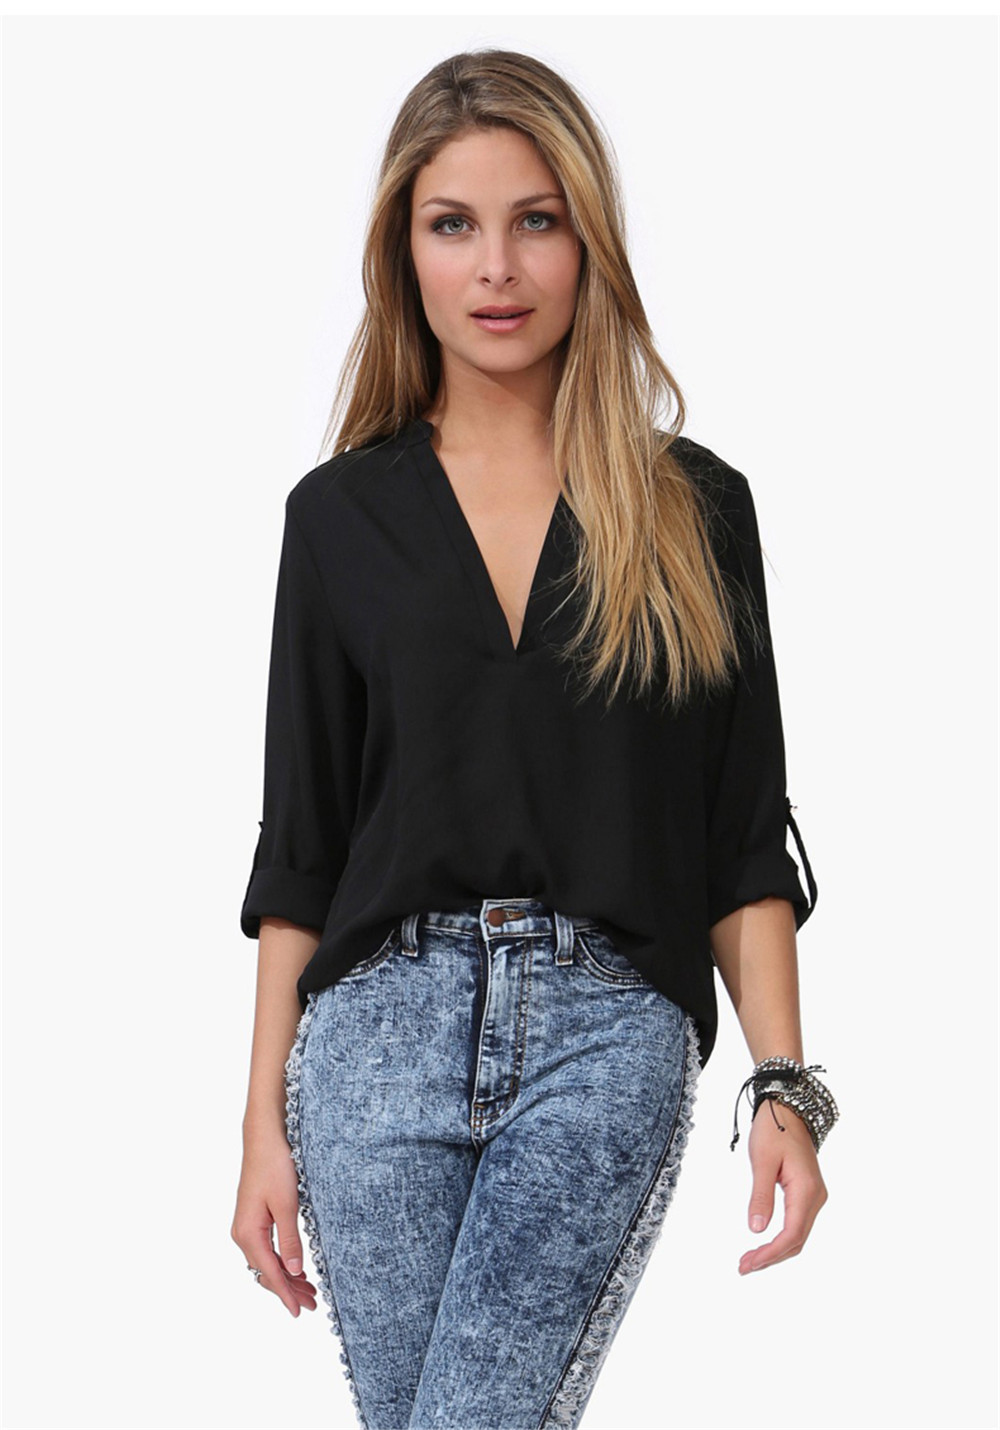 New 2015 Summer Women Blouse Shirt Fashion Chiffon Tops